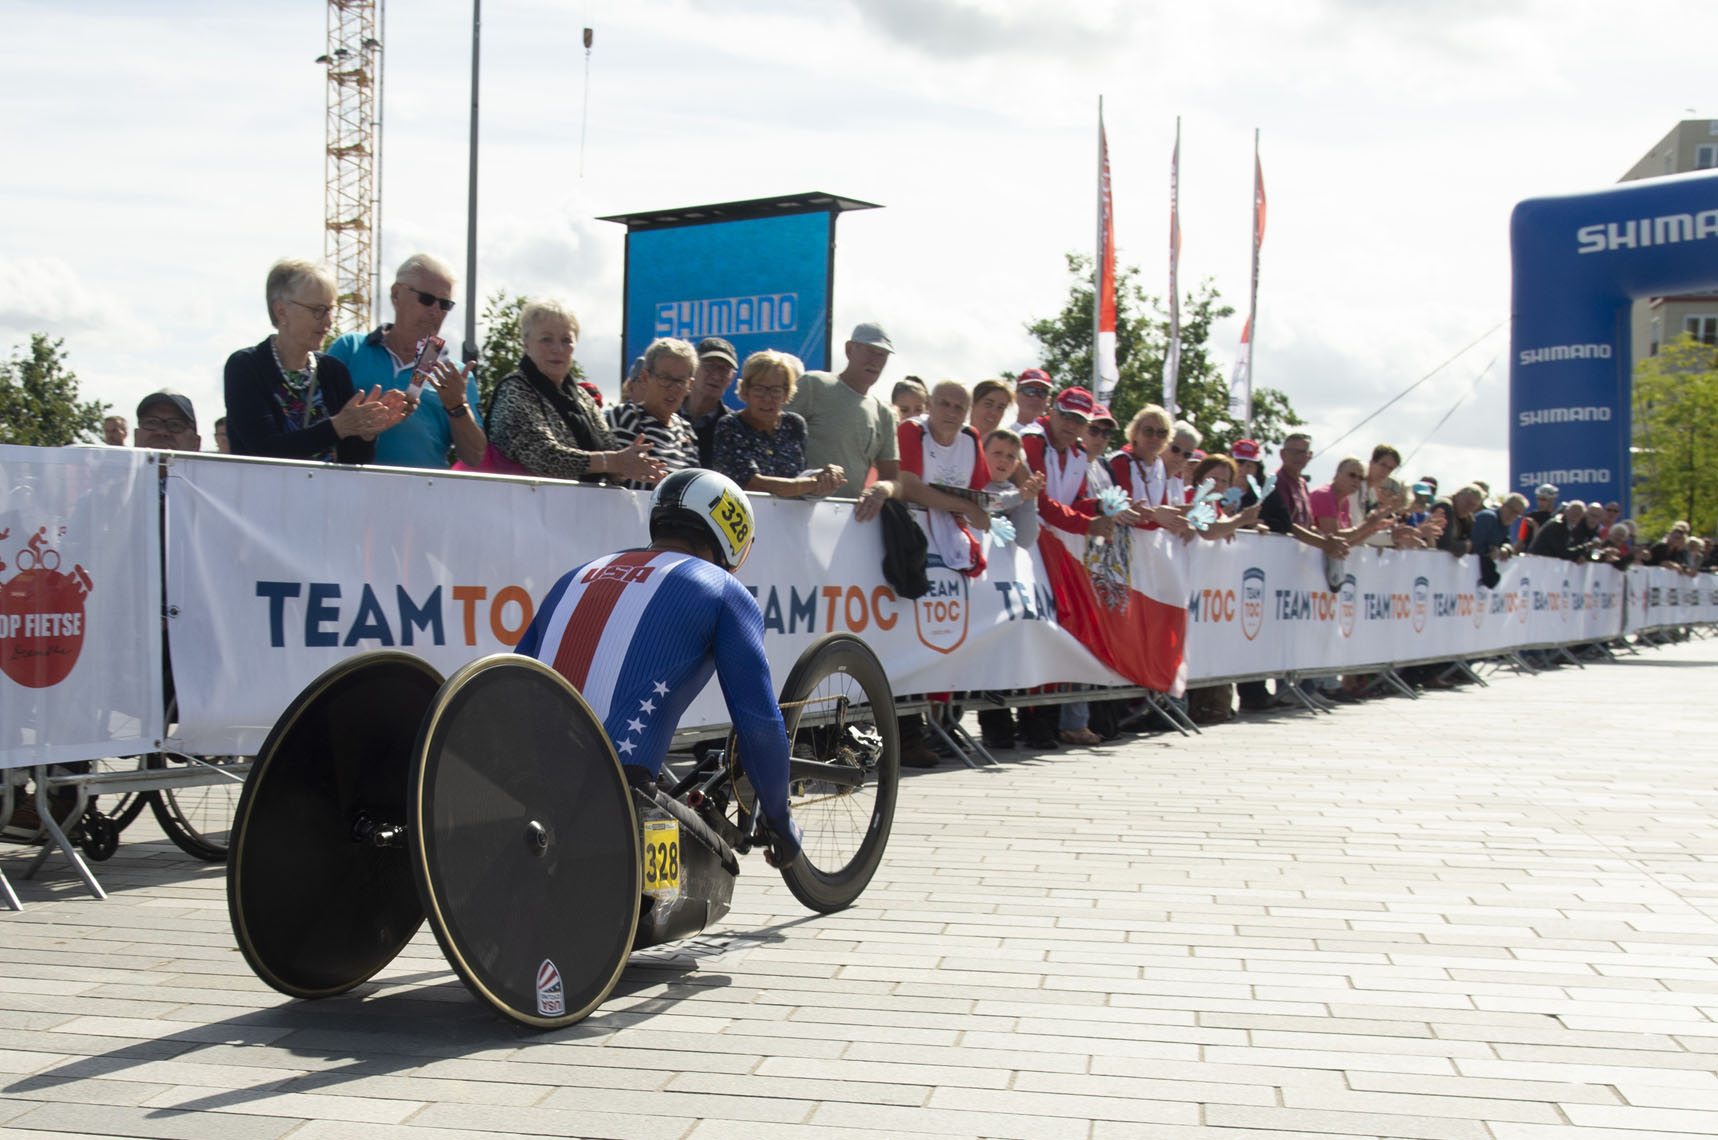 Oscar Sanchez, 2019 Paracycling Road World Championships